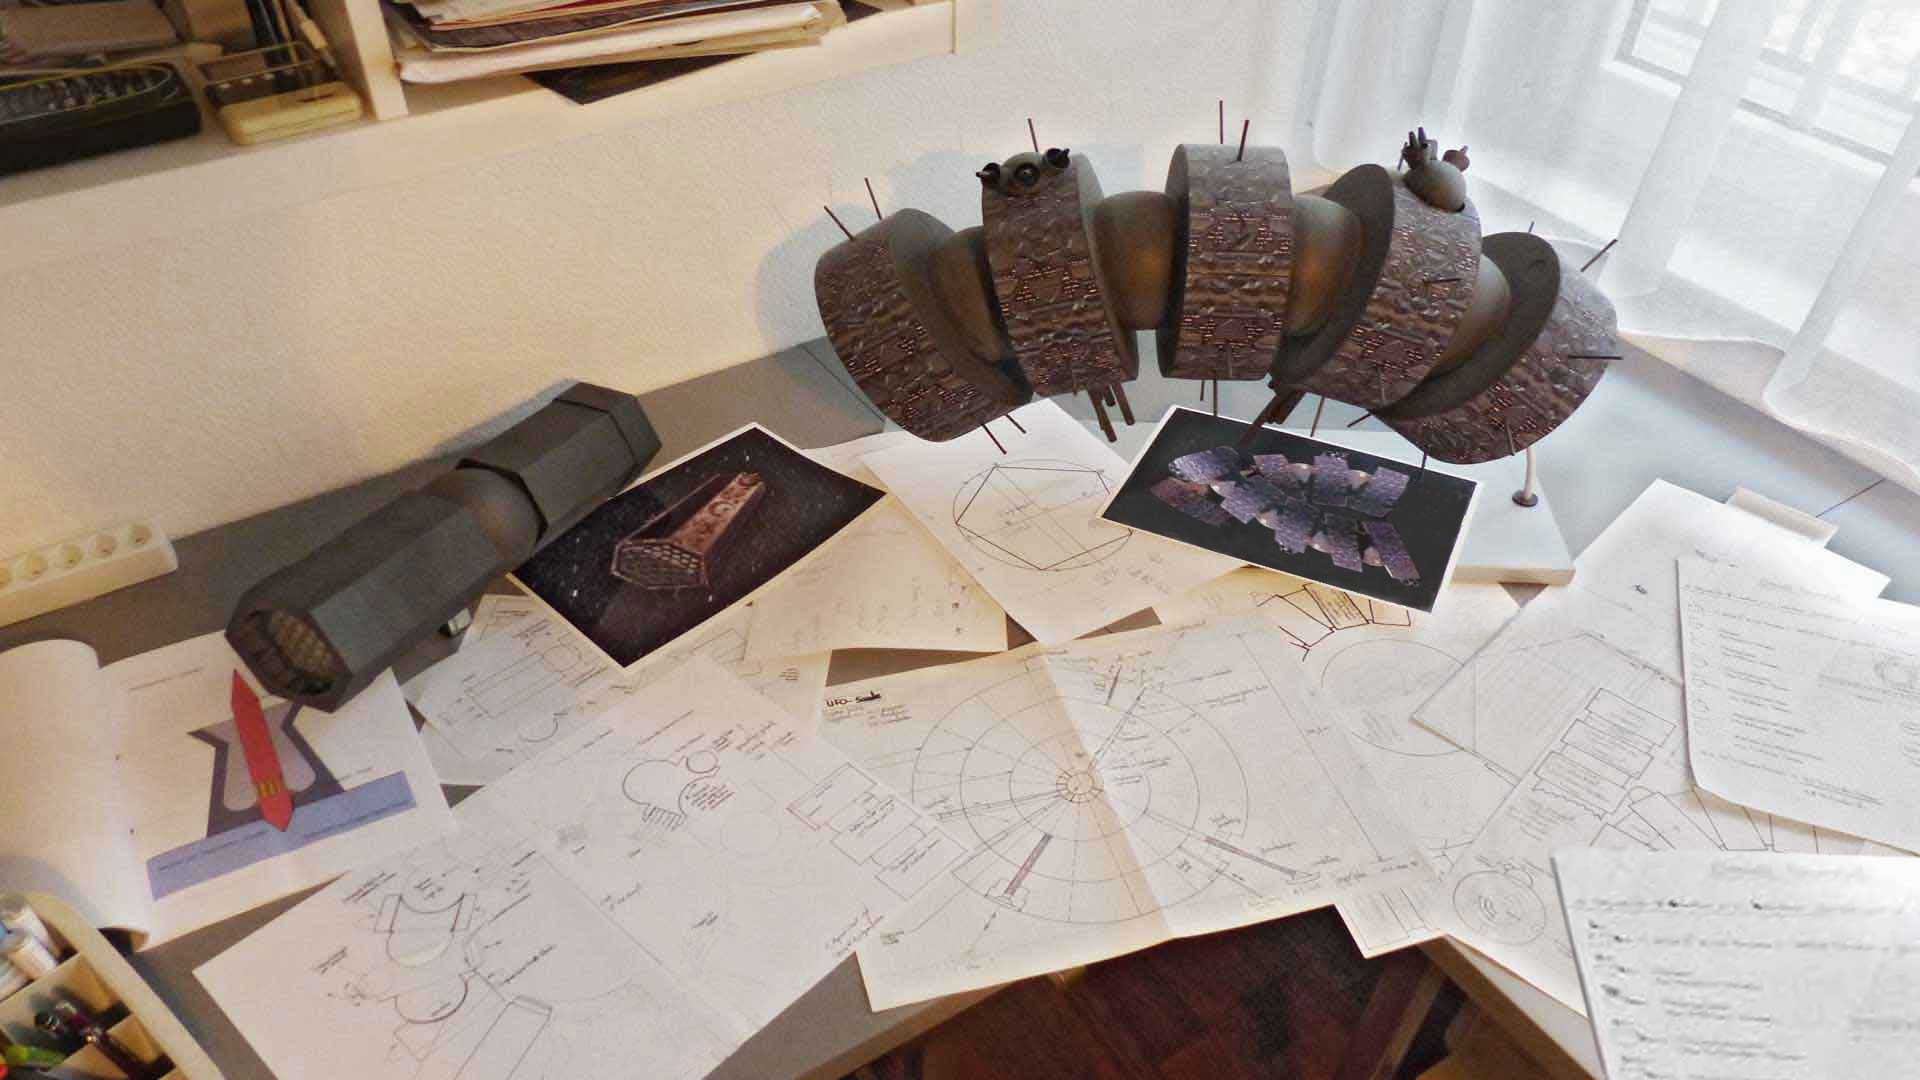 Sketches and spaceship models for LOST GOD.